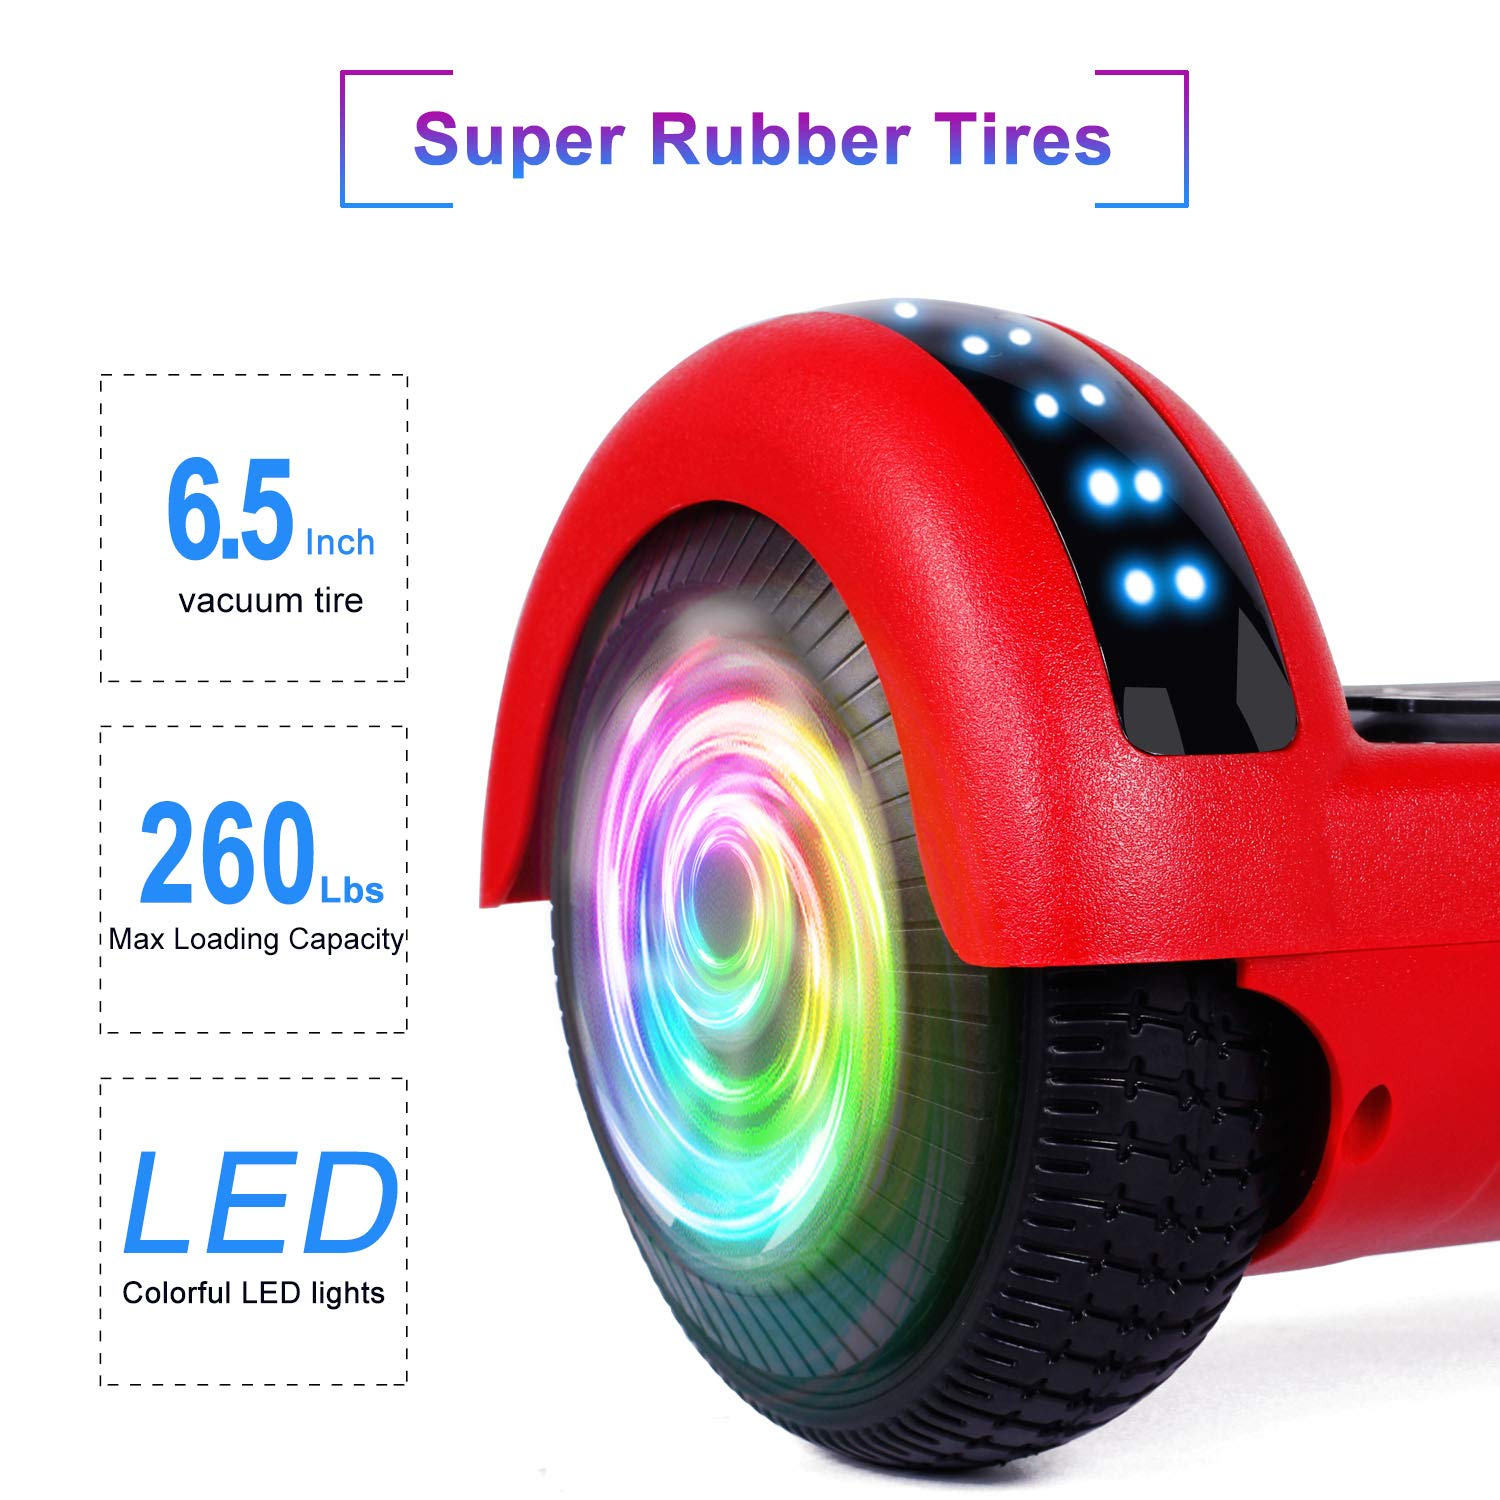 "SISIGAD Hoverboard 6.5"" Self Balancing Scooter with Colorful LED Wheels Lights Two-Wheels self Balancing Hoverboard Dual 300W Motors Hover Board UL2272 Certified(Free Carry Bag Available) by SISIGAD (Image #4)"